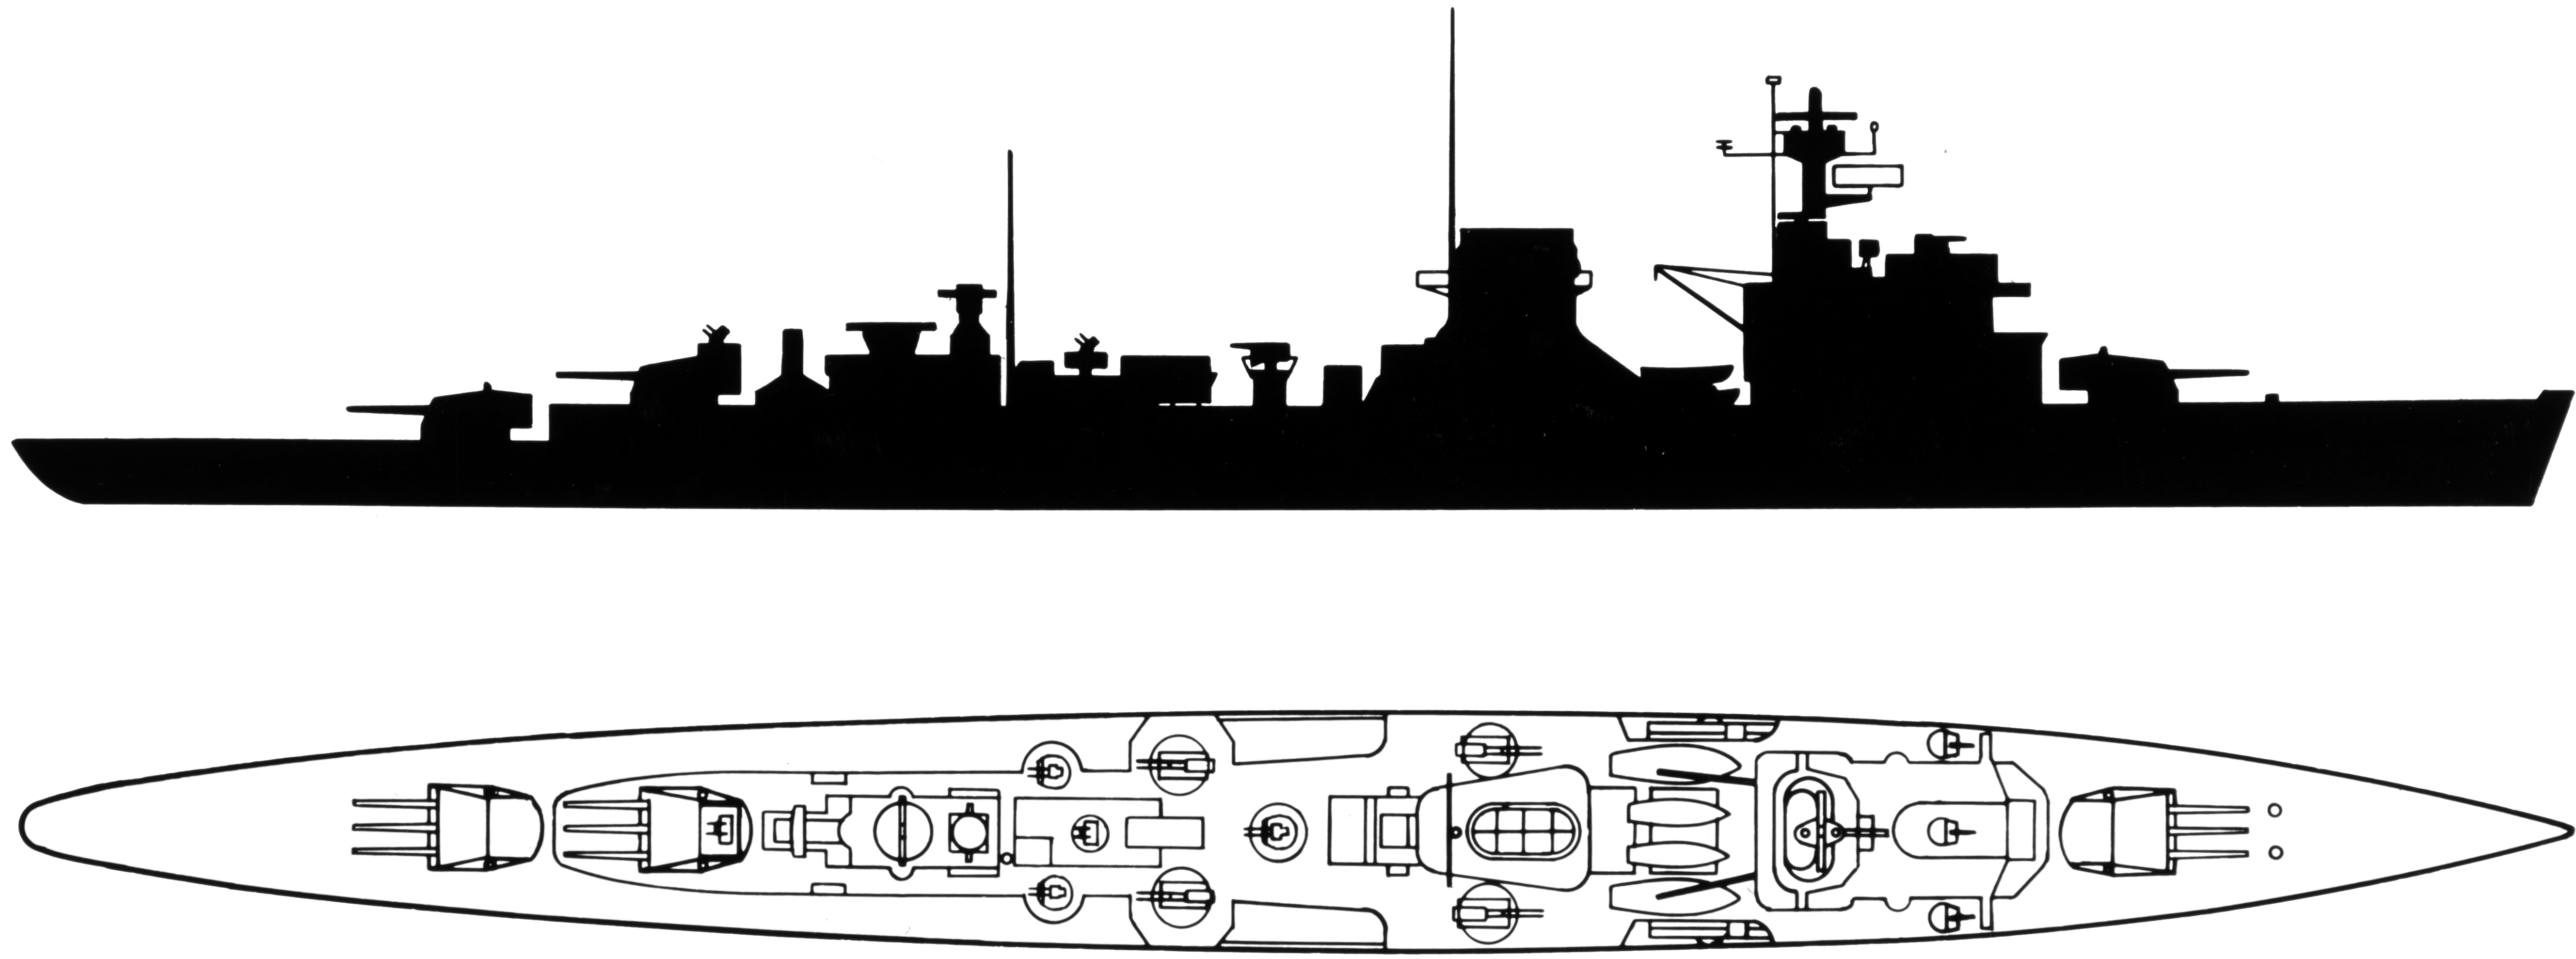 File:Recognition silhouette of the Soviet light cruiser ...